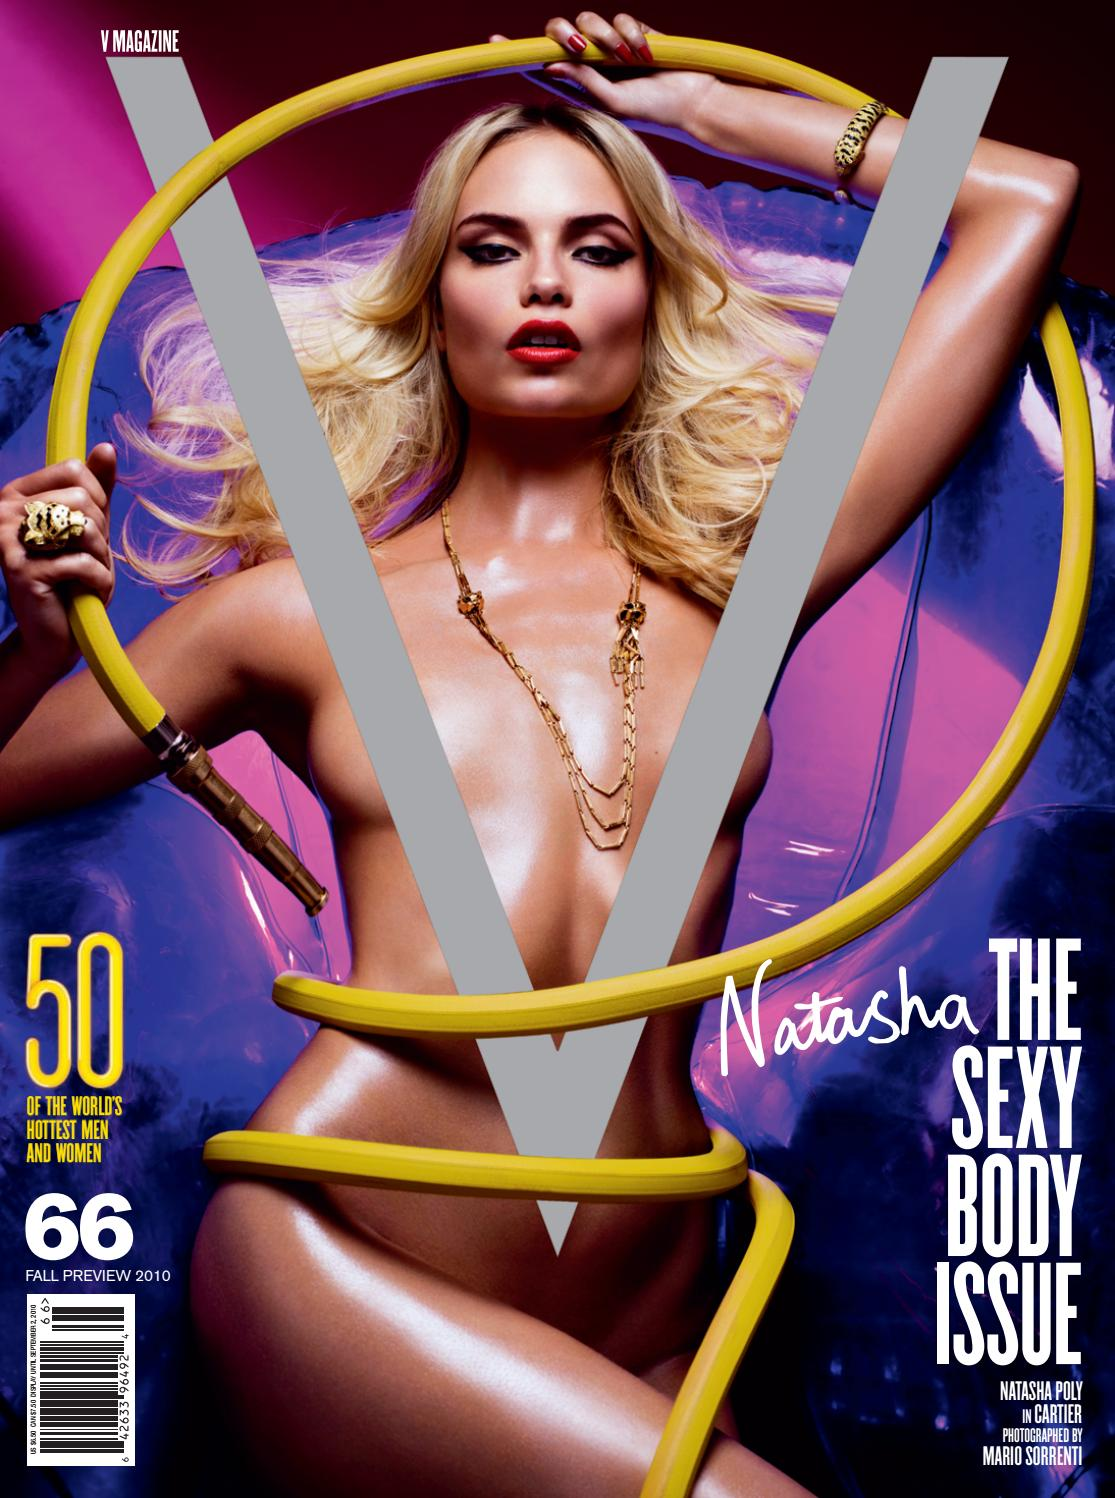 Ana Lago Hot v66 the sexy body issuev magazine - issuu